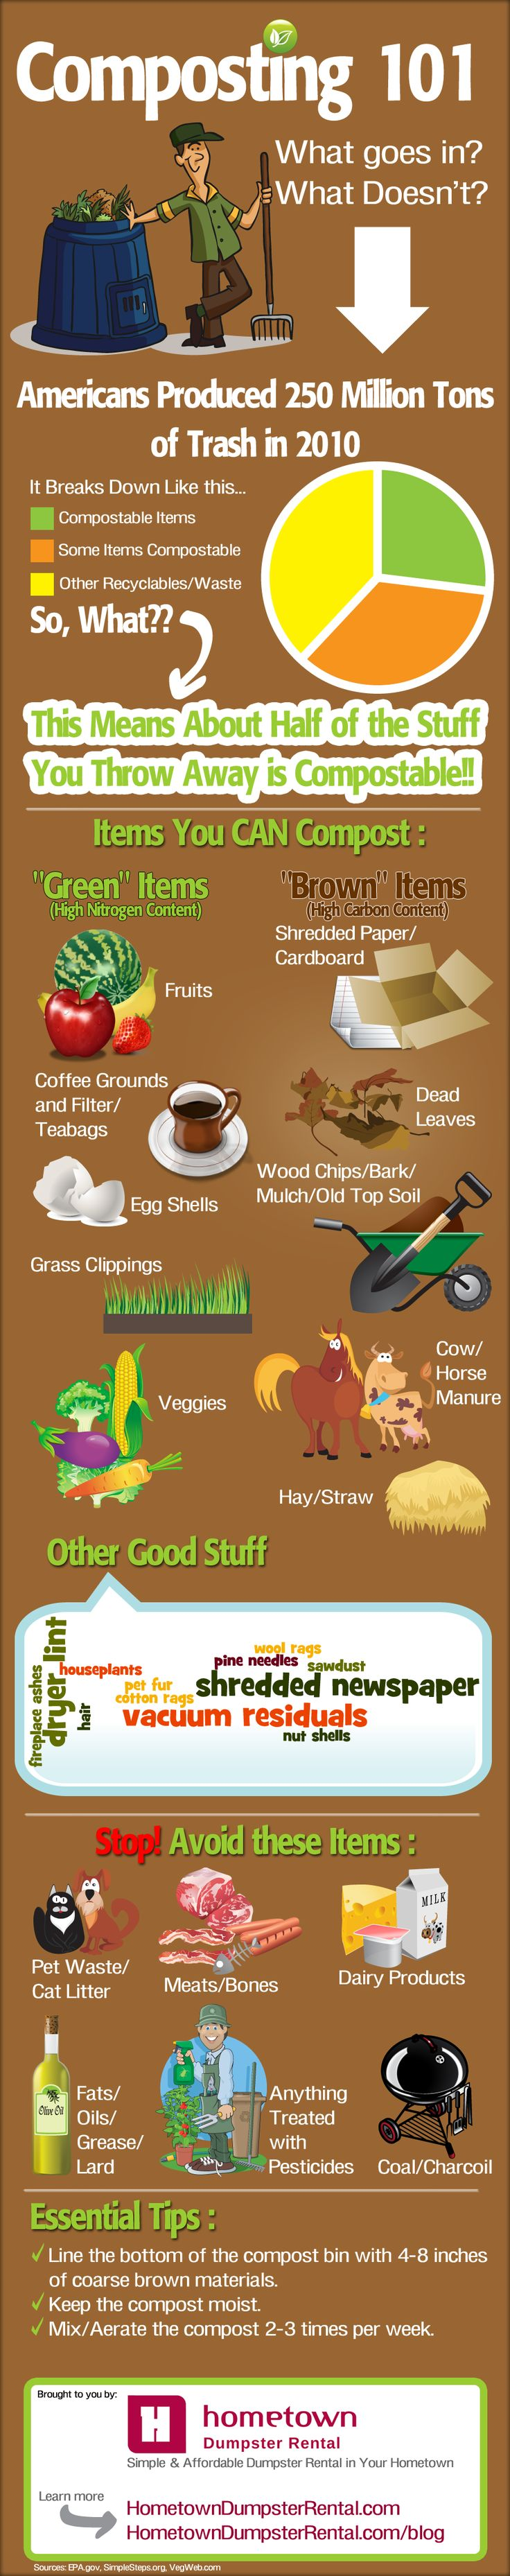 Composting! Trash Talk Infographic